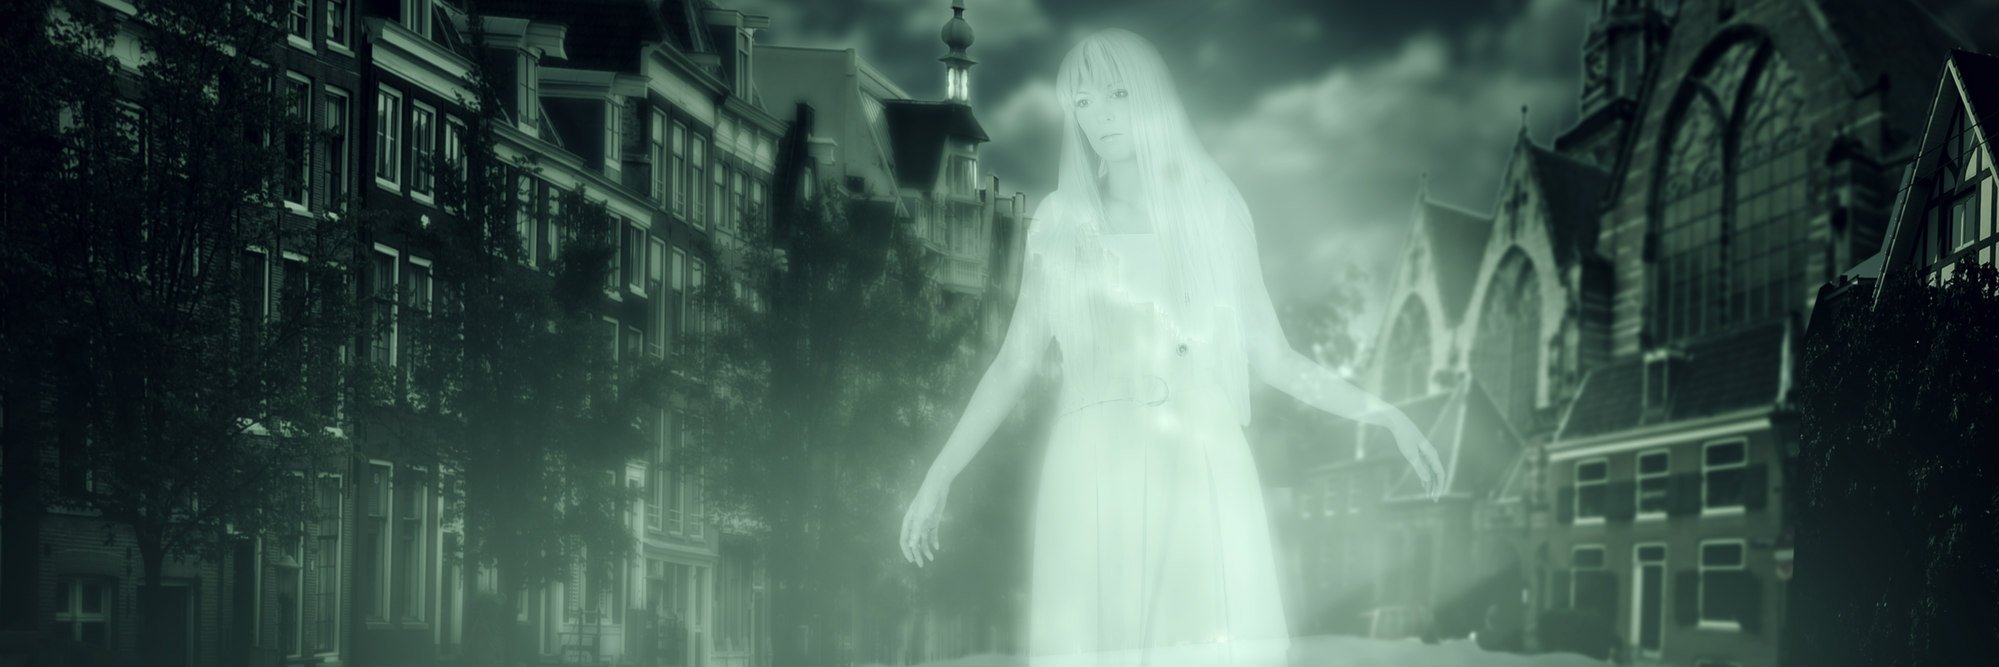 white ghost of a woman walking down the street of the old town